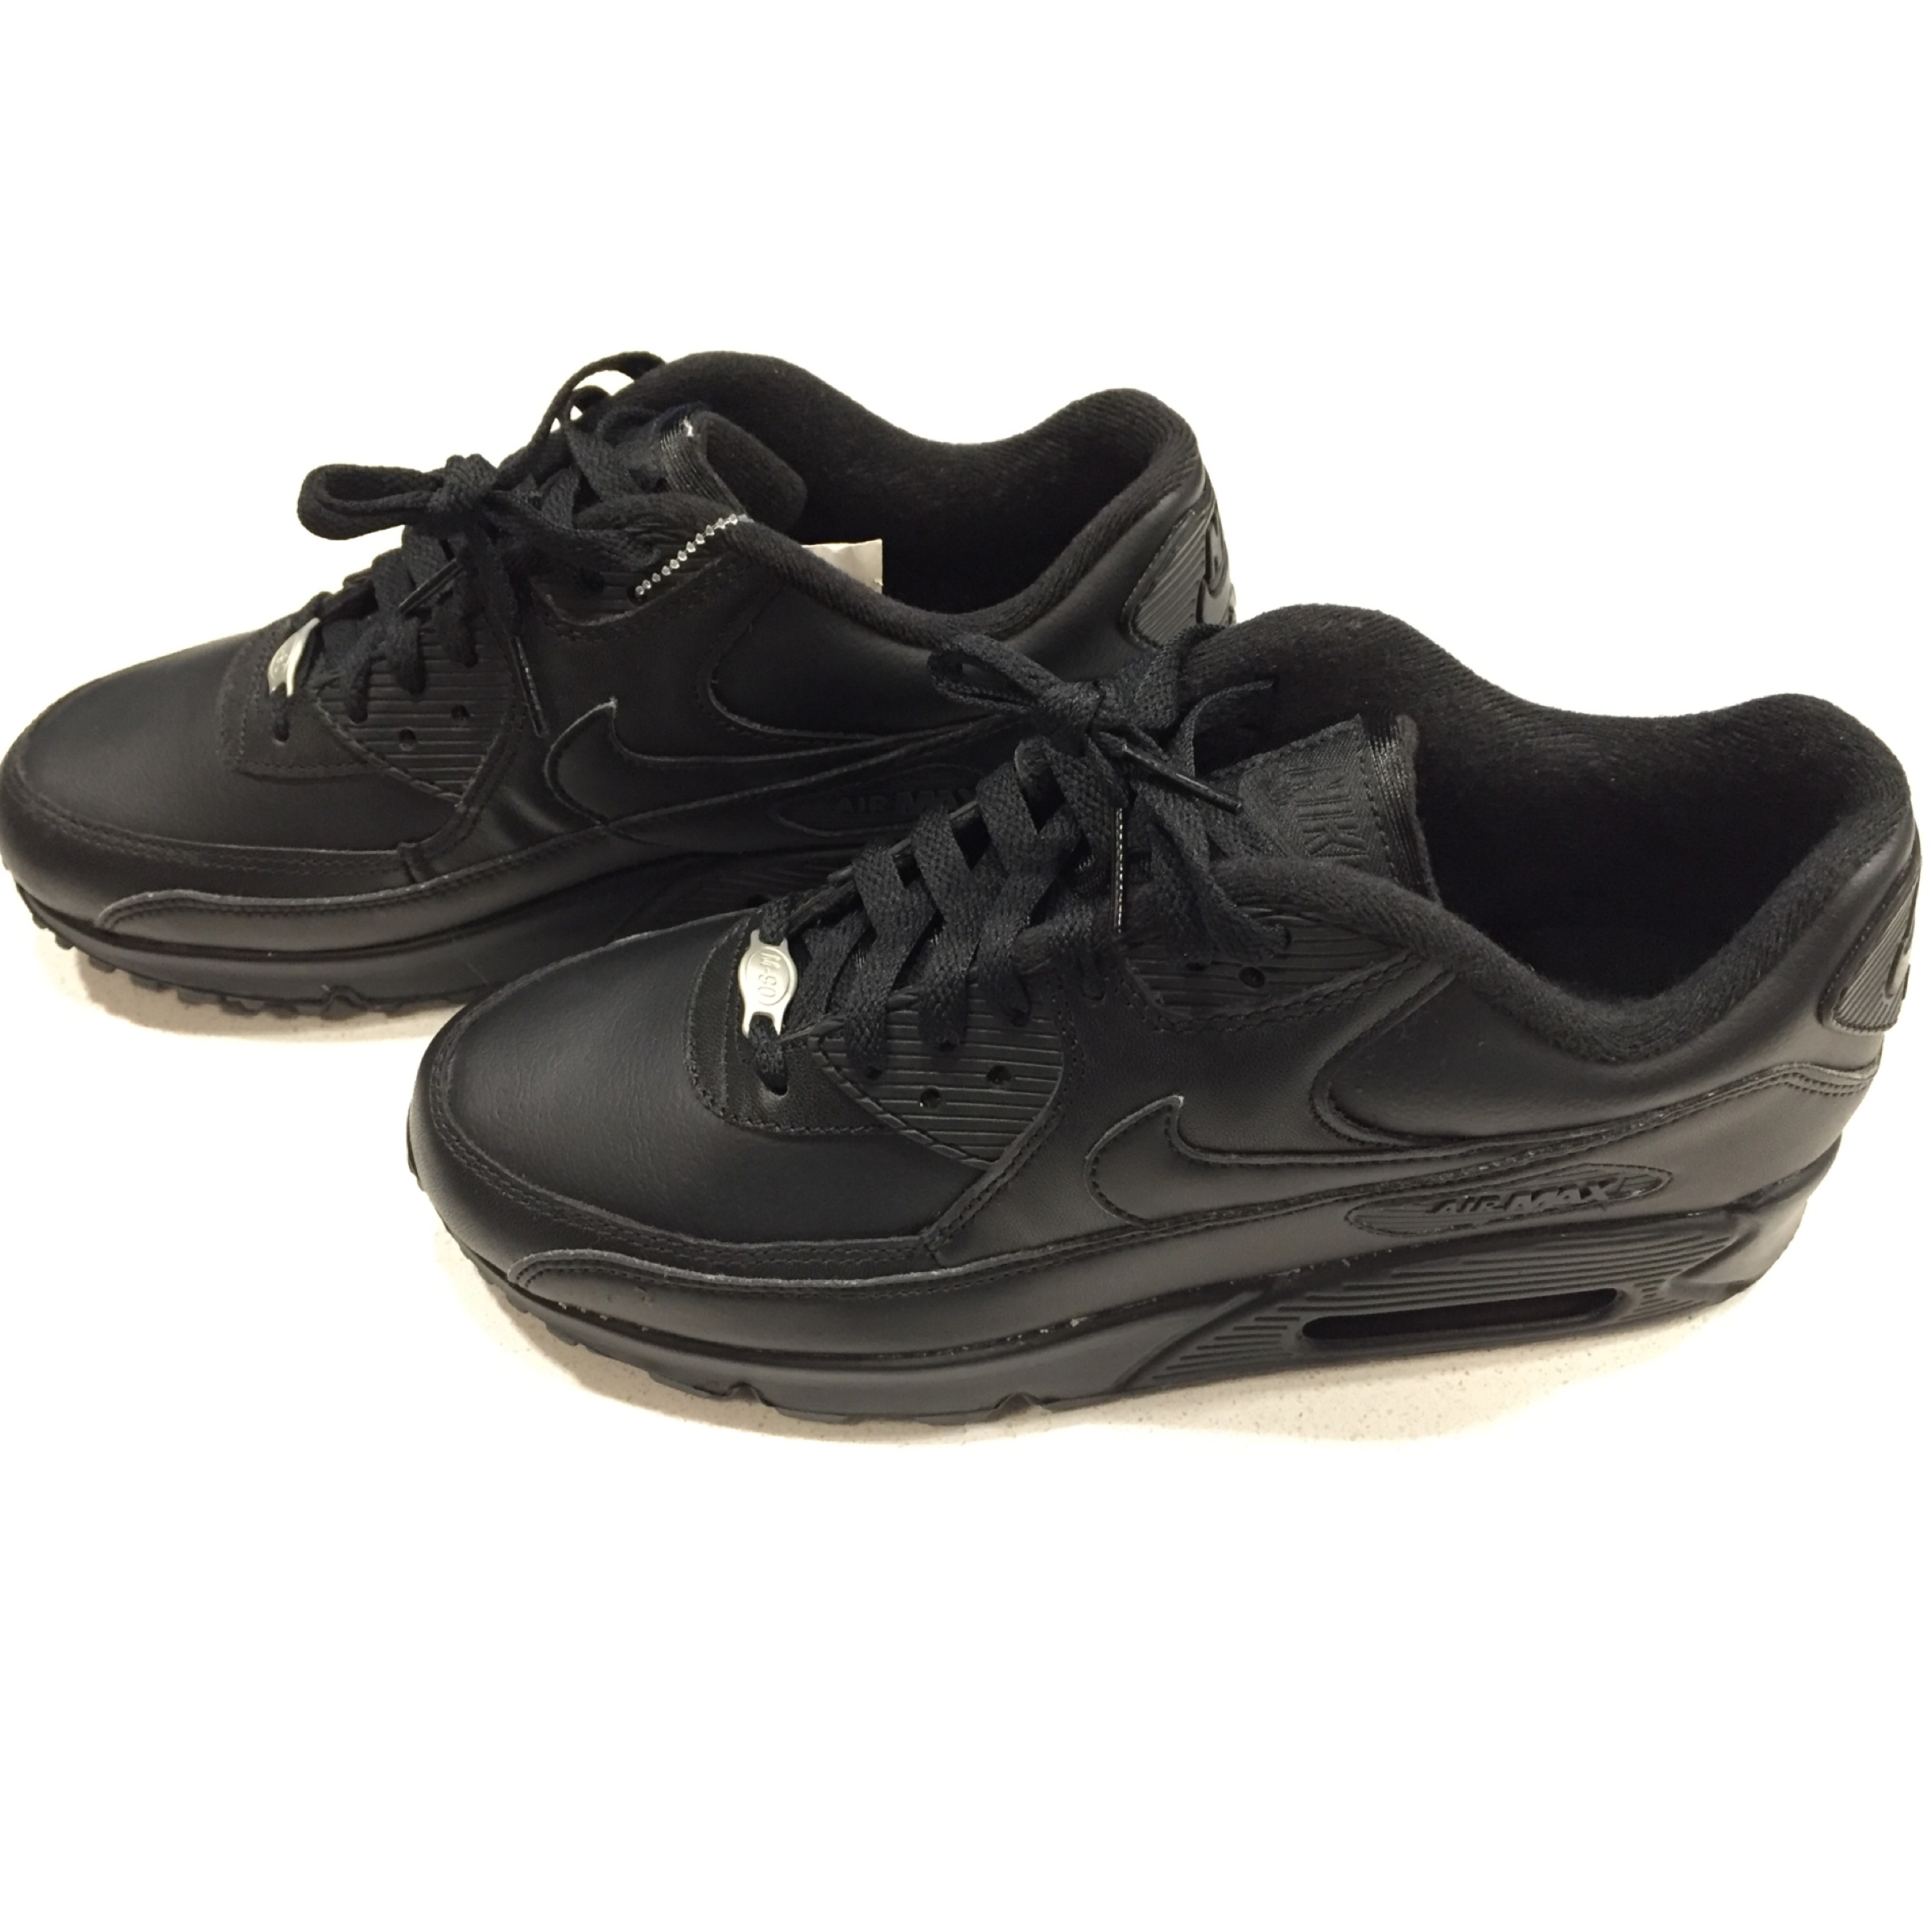 All Black Nike Air Max M90 Leather Mens Shoes in Depop